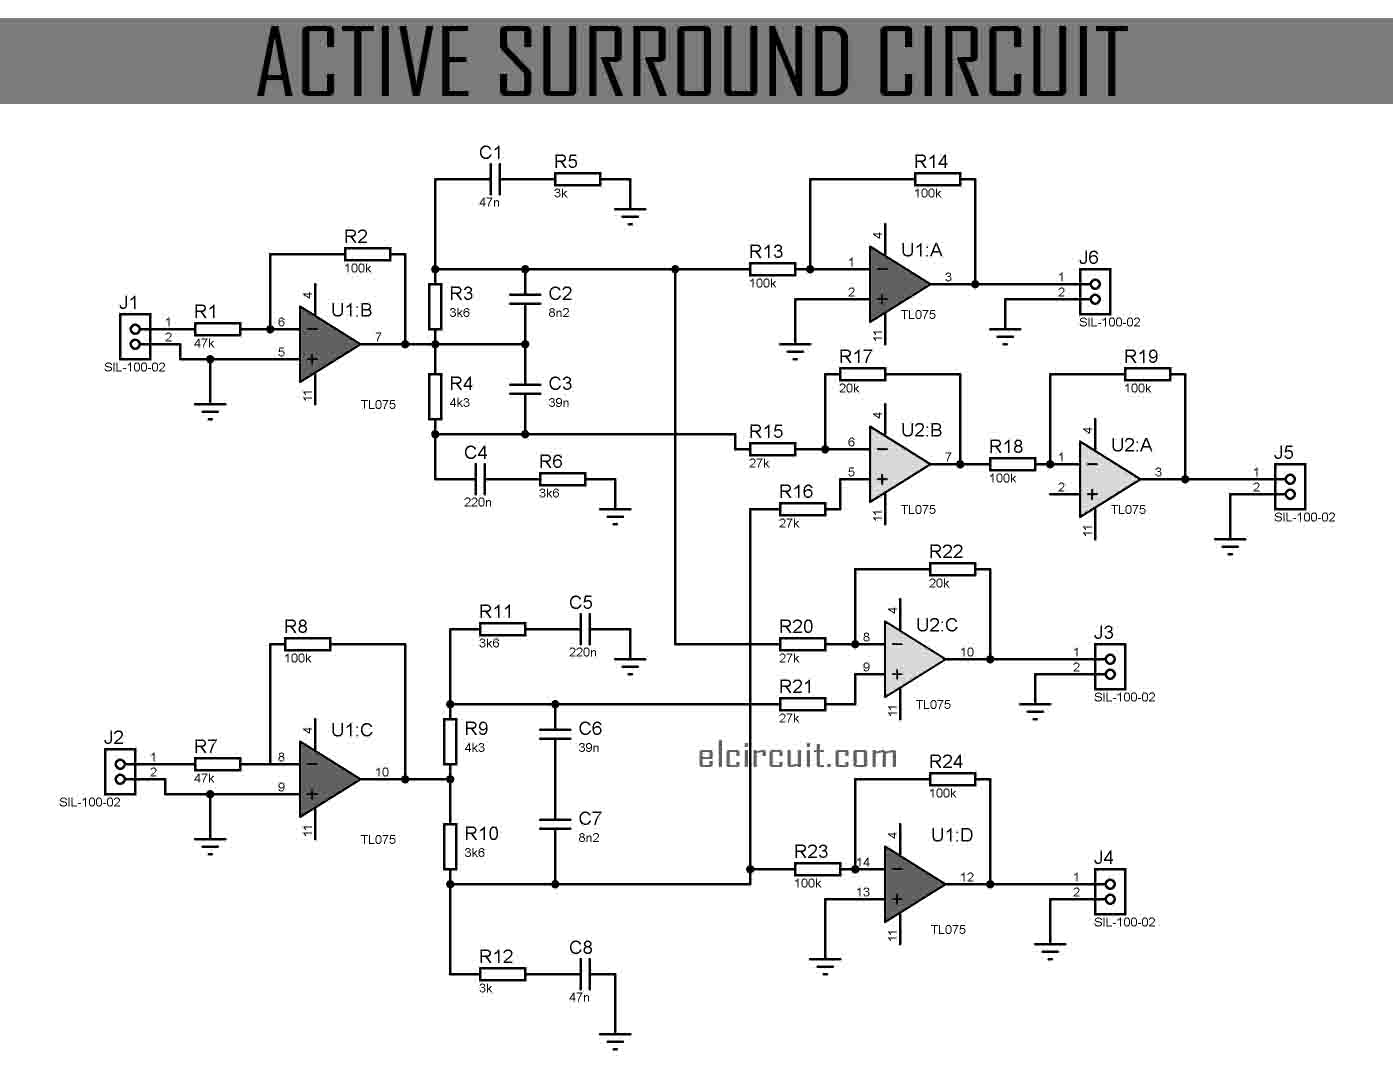 hight resolution of below the active surround sound circuit diagram include regulated power supply 12v